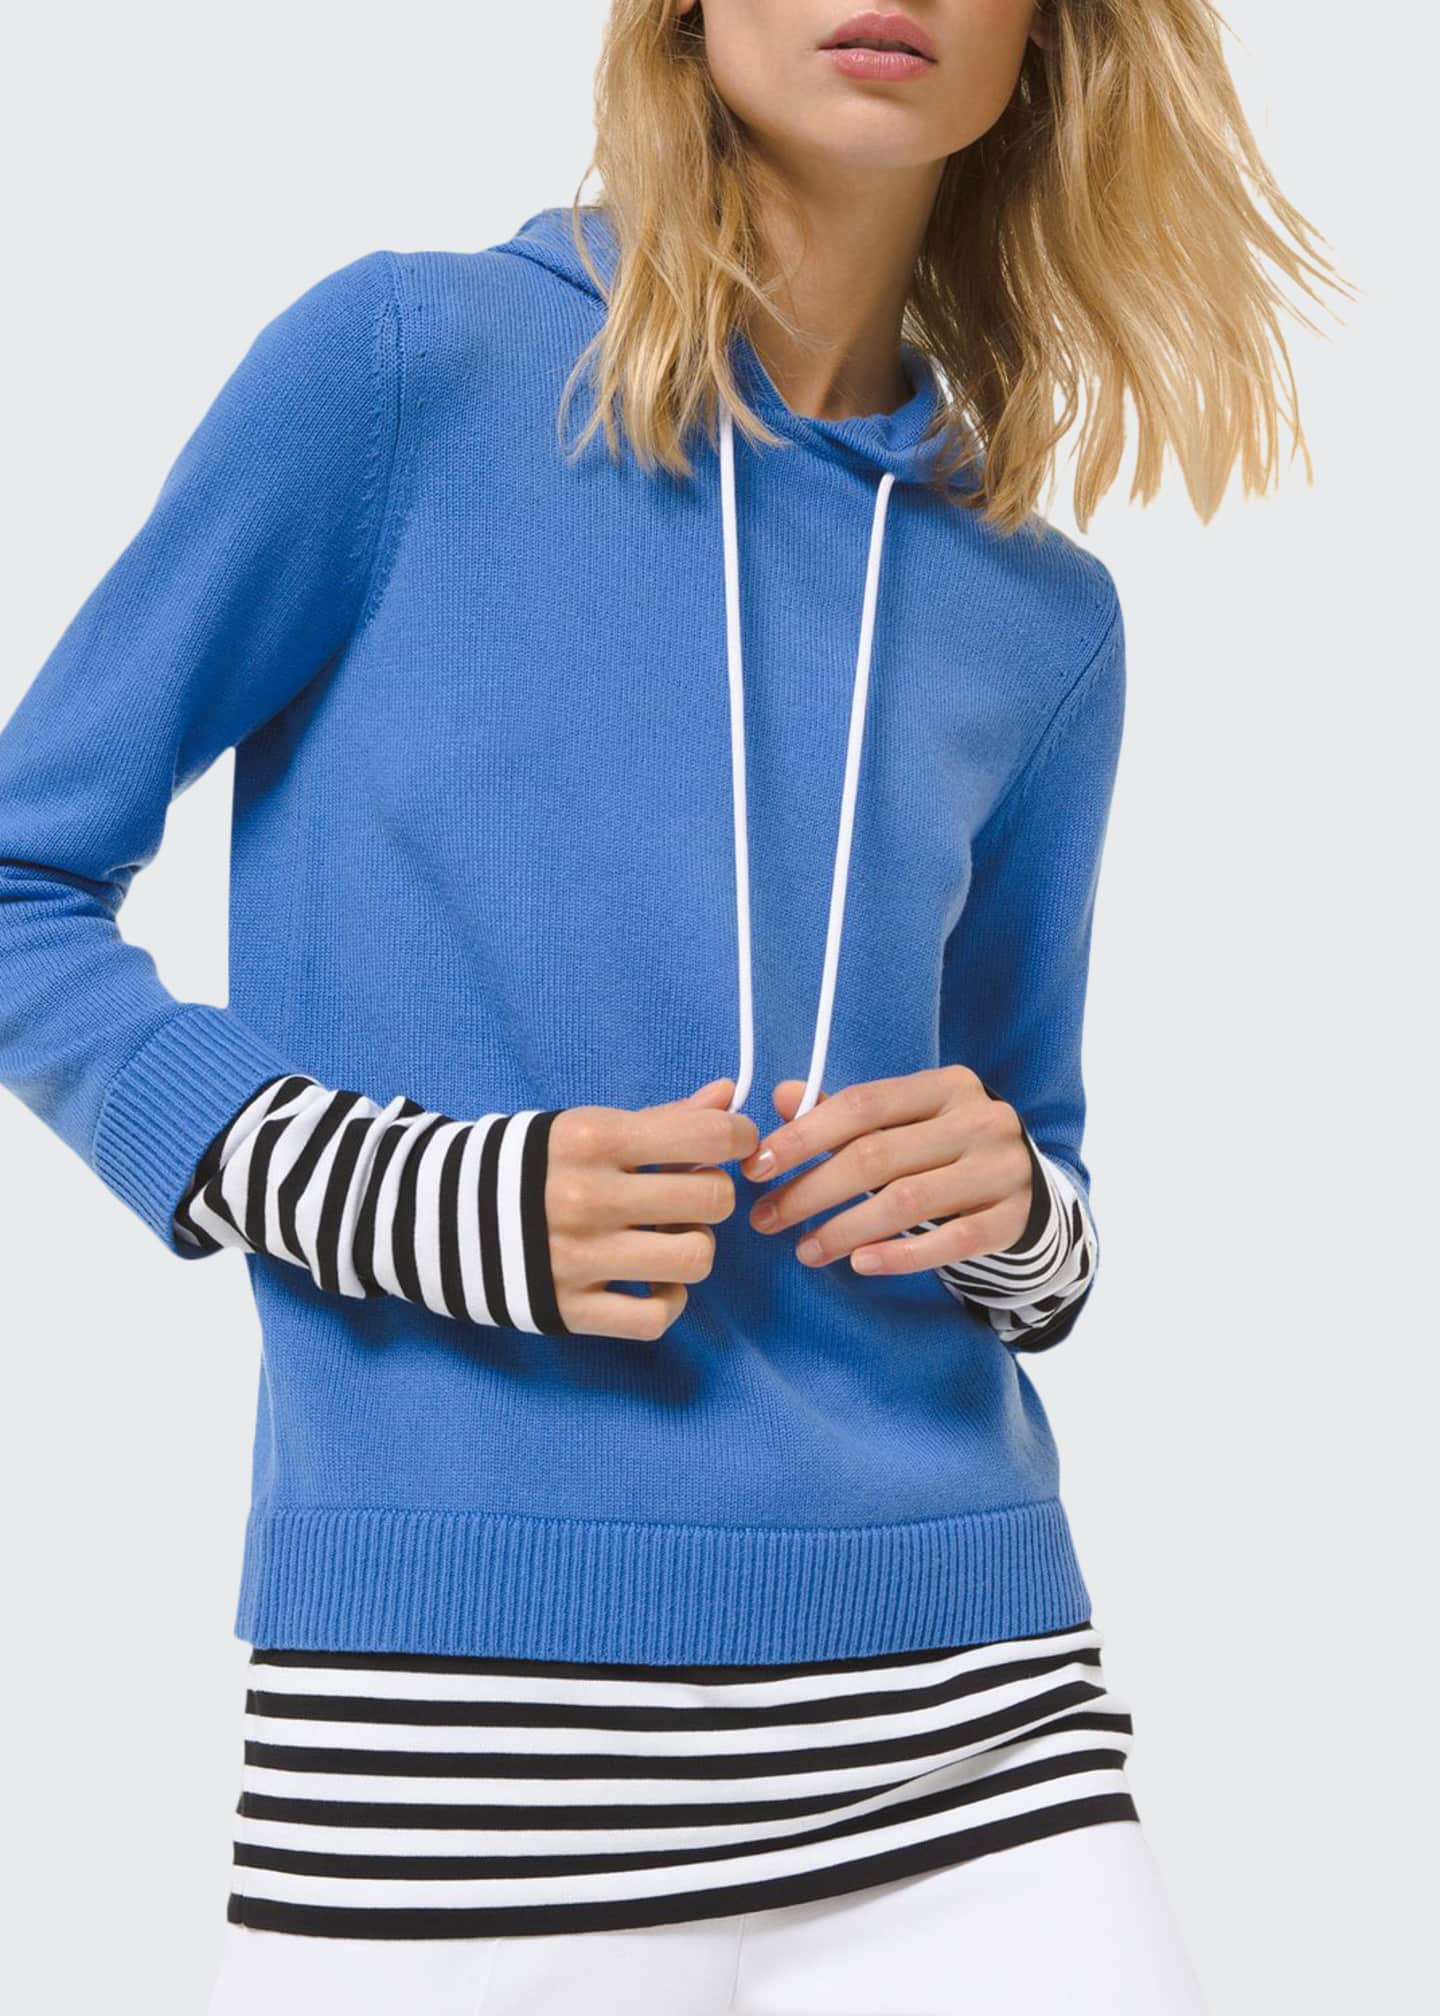 Michael Kors Collection Cashmere Layered Pullover Hoodie w/